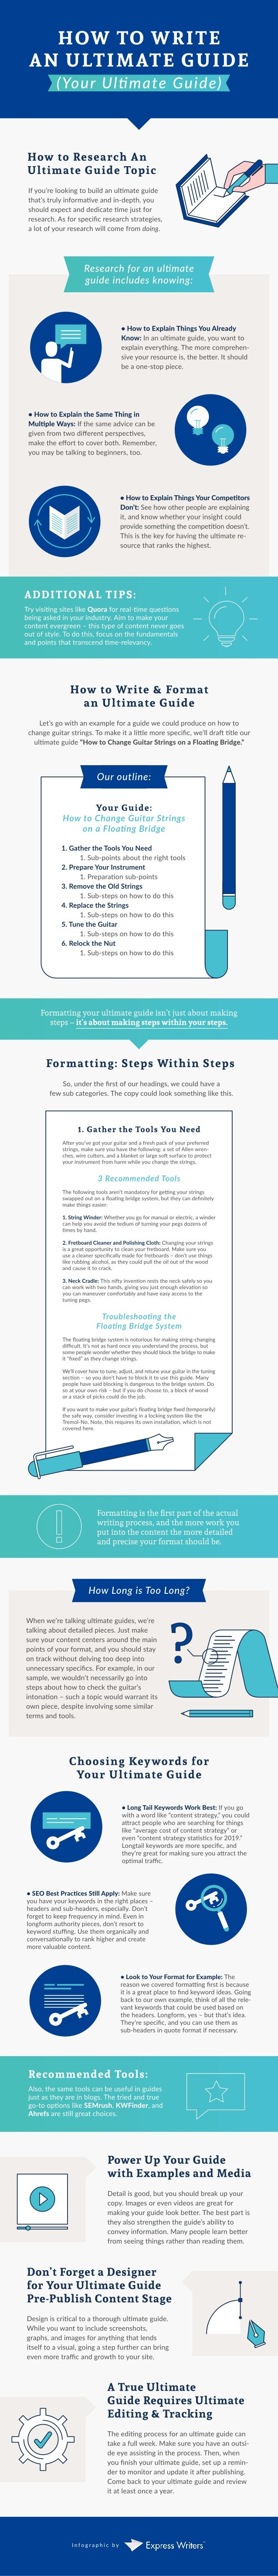 Your Ultimate Guide on How to Write an Ultimate Guide